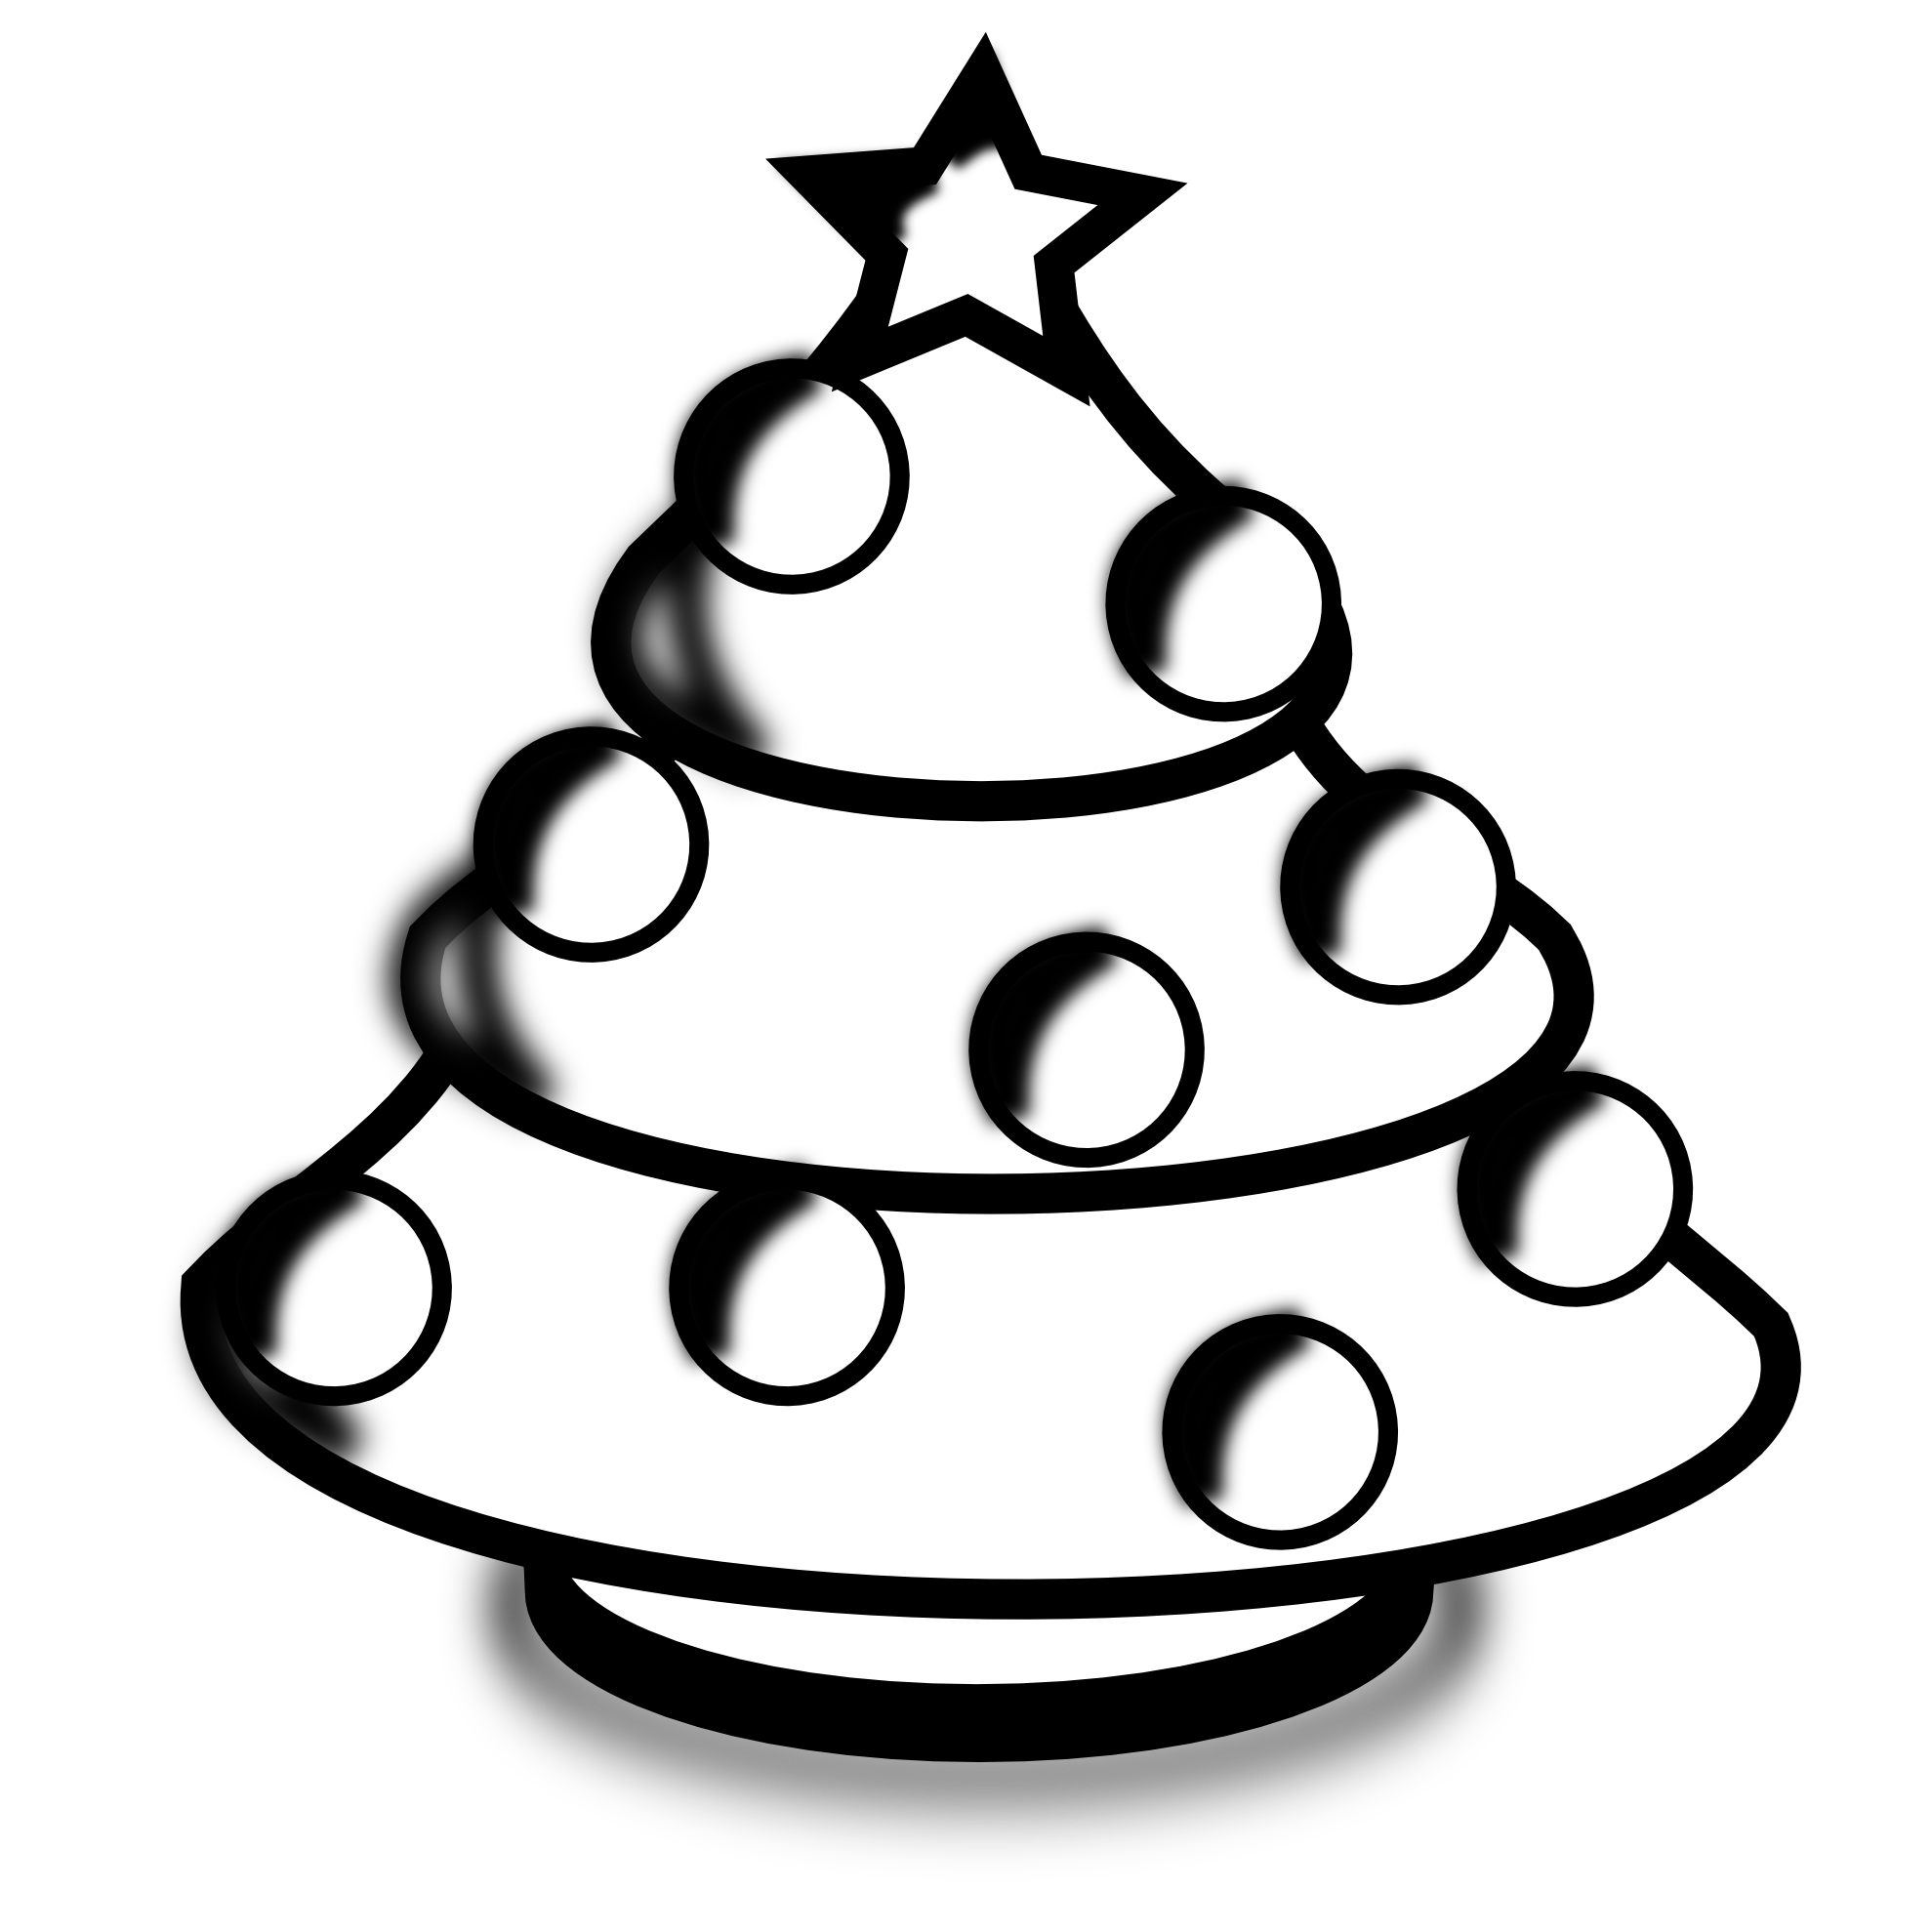 royalty free download Grinch clipart black and white. Free printable christmas clipground